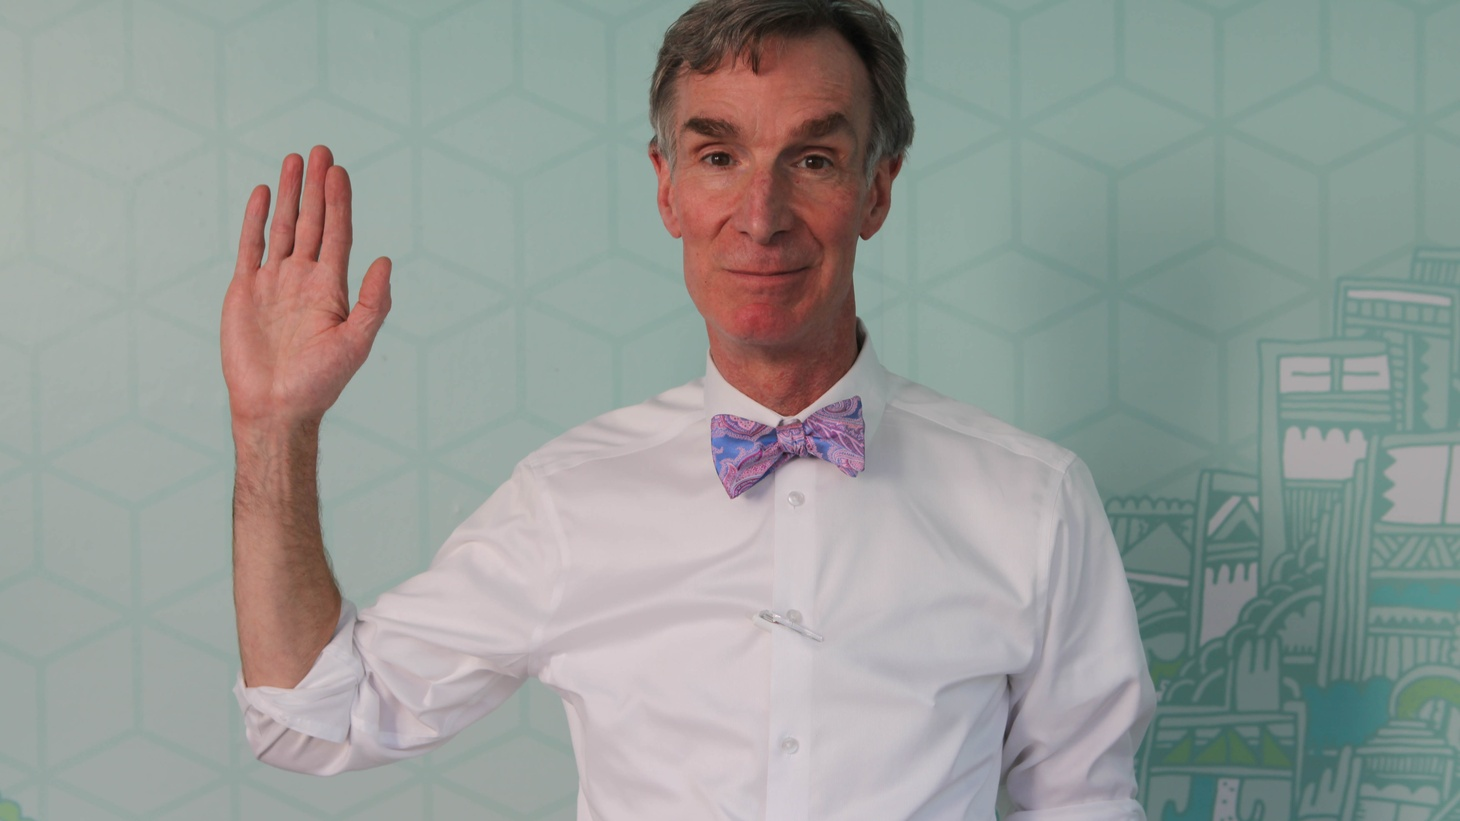 Remains believed to belong to 43 student teachers who went missing in Mexico six weeks ago have been found, setting off massive protests throughout the country. Also, Bill Nye the Science Guy explains why he's on a mission to disprove creationism.